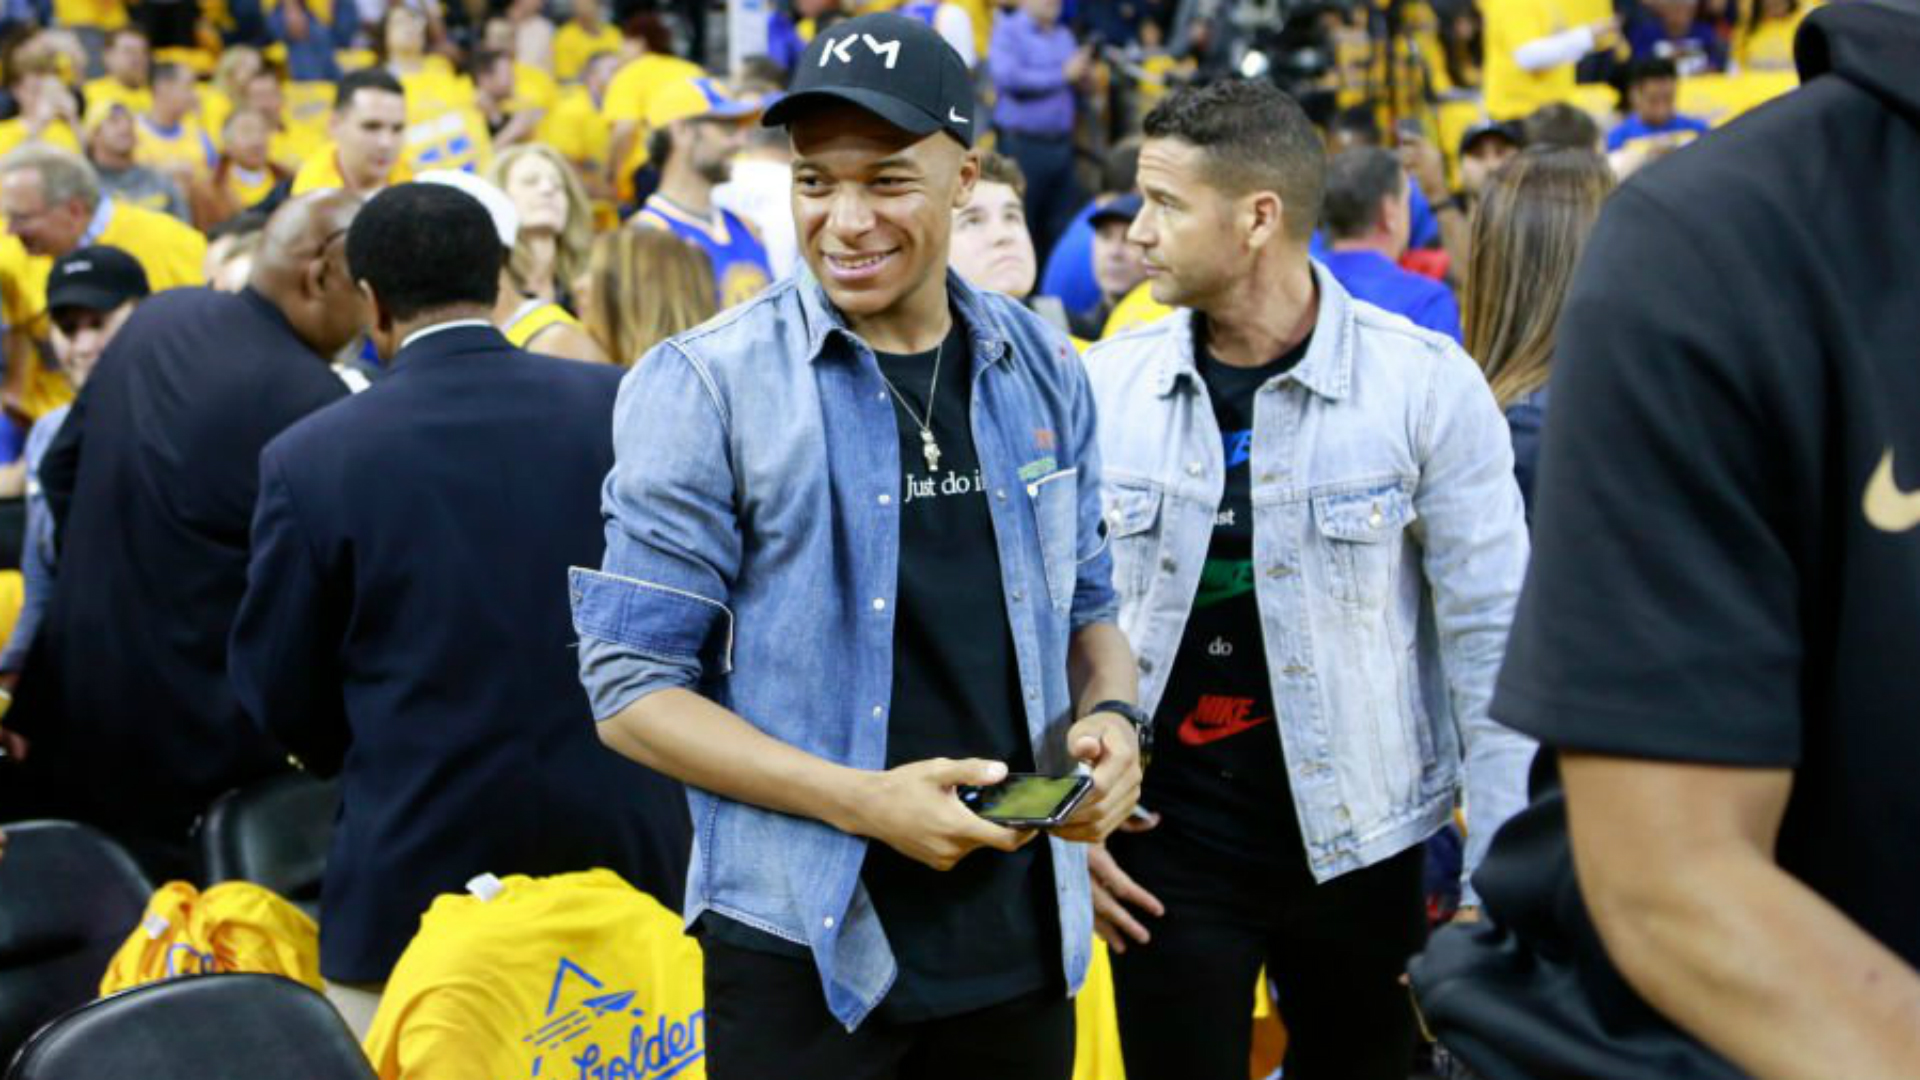 PSG star Mbappe watches Warriors v Raptors in NBA Finals